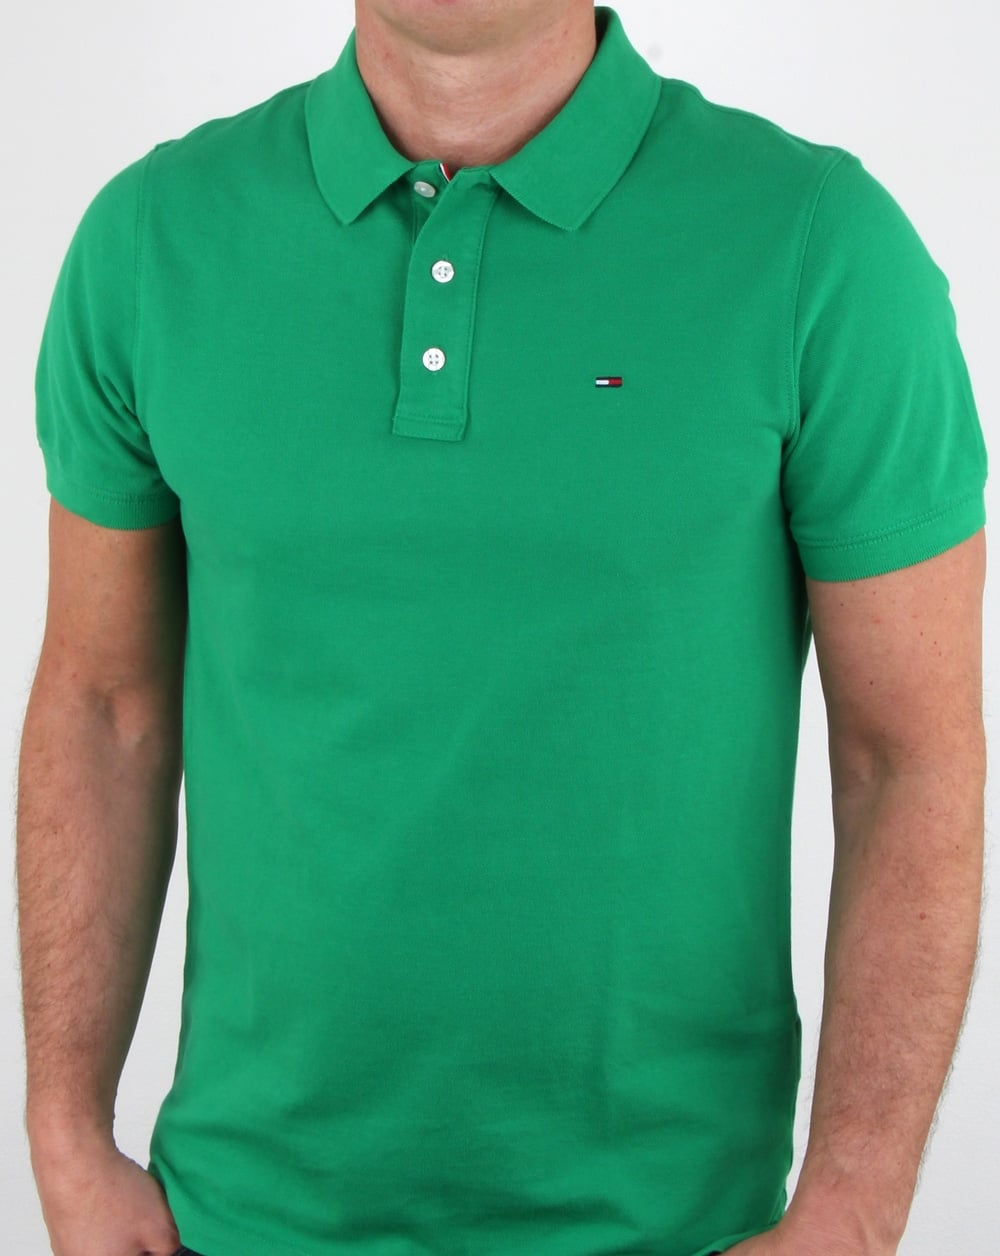 b1b43264 Tommy Hilfiger Cotton Pique Polo Shirt Green, Mens, Polo Shirt, Cotton